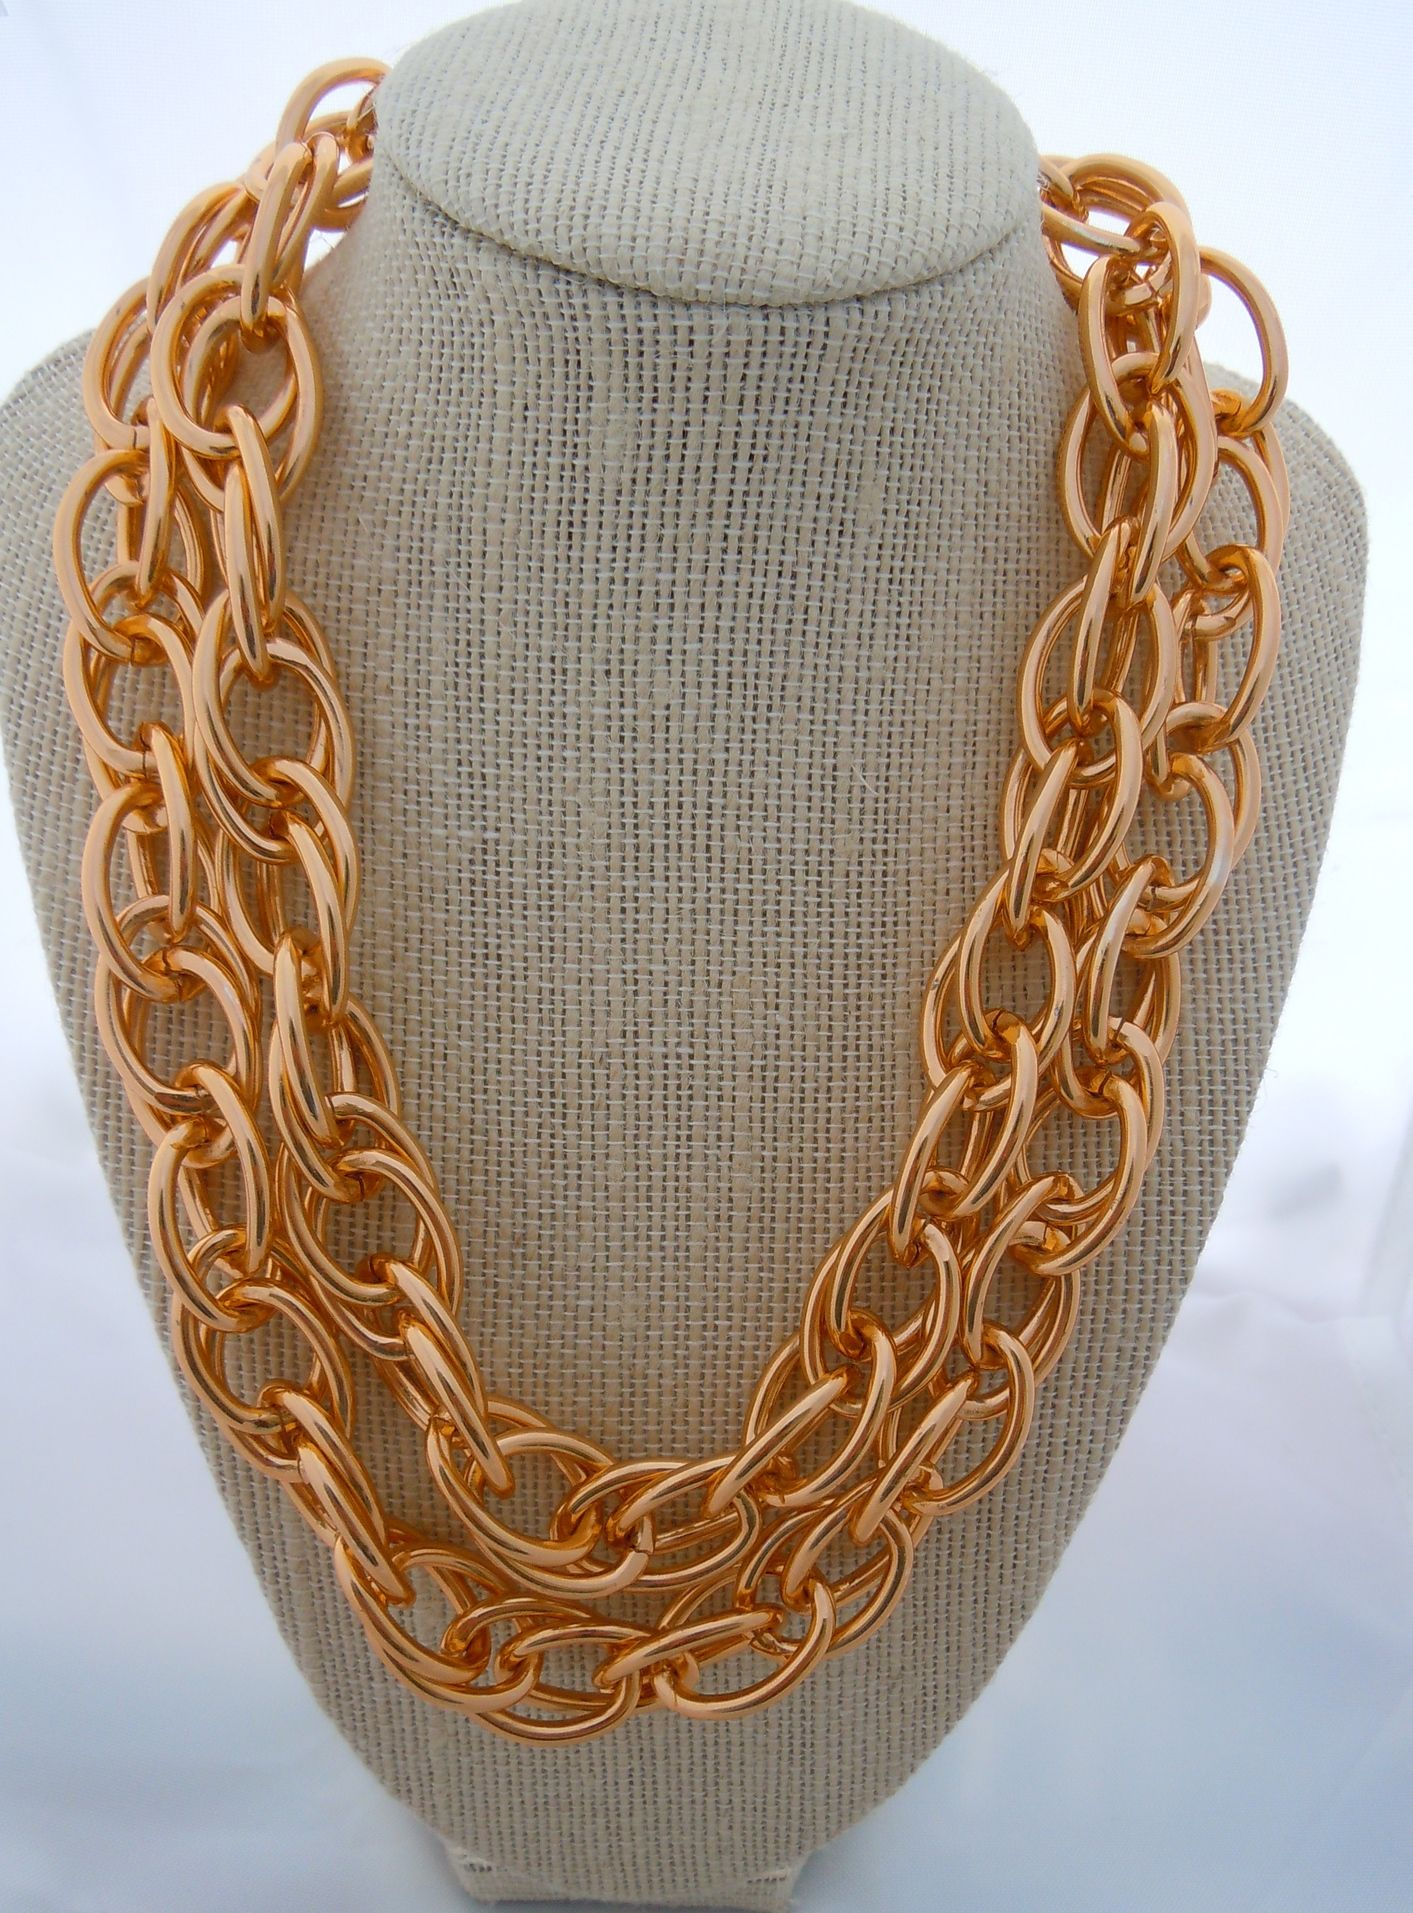 ad2dba14c6e7c House of Zada Chunky/Statement Two Tier Gold Chain Necklace ...